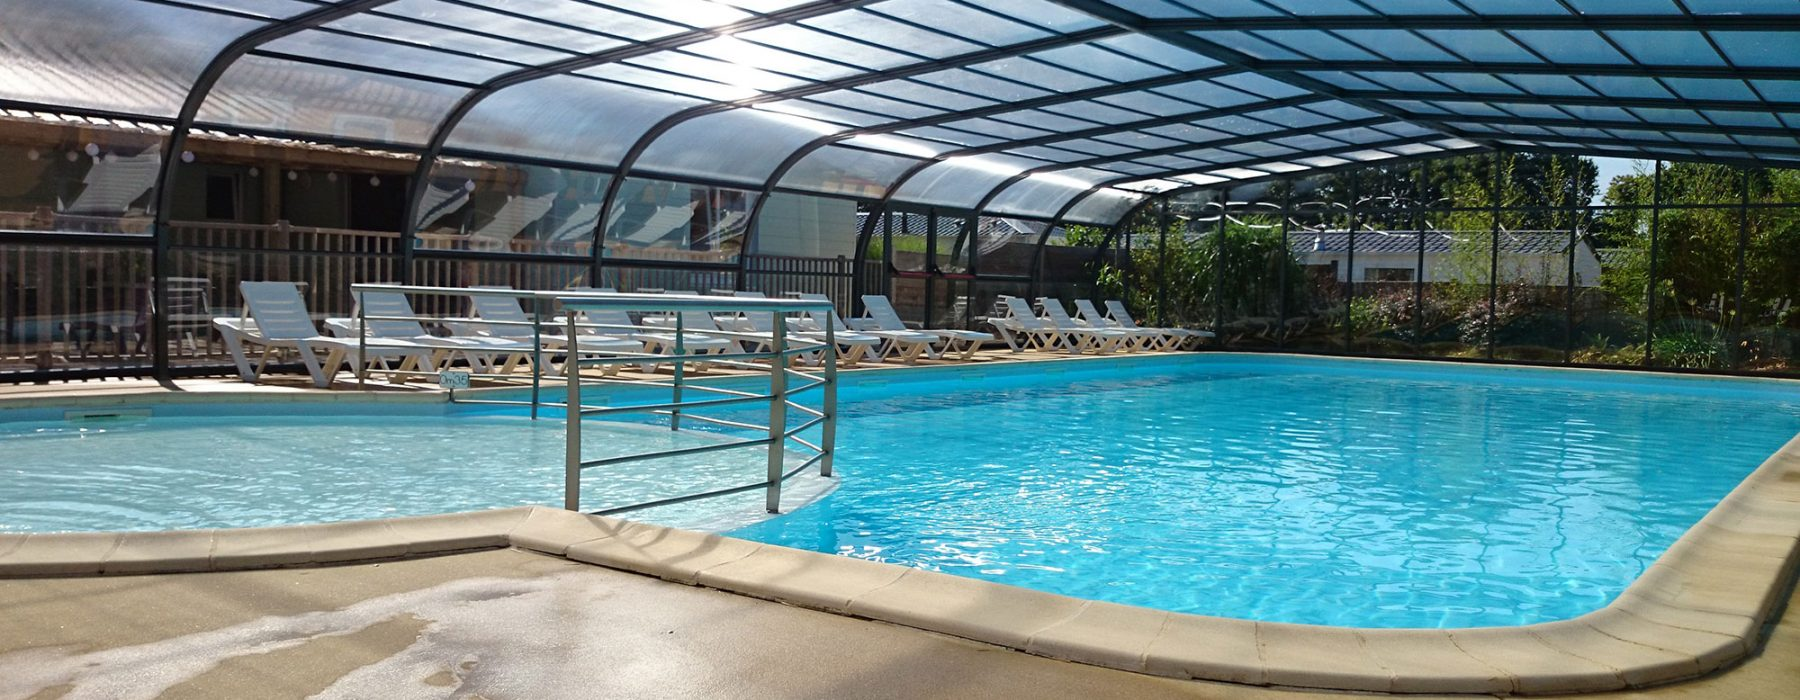 Piscine couverte chauffée camping Morbihan